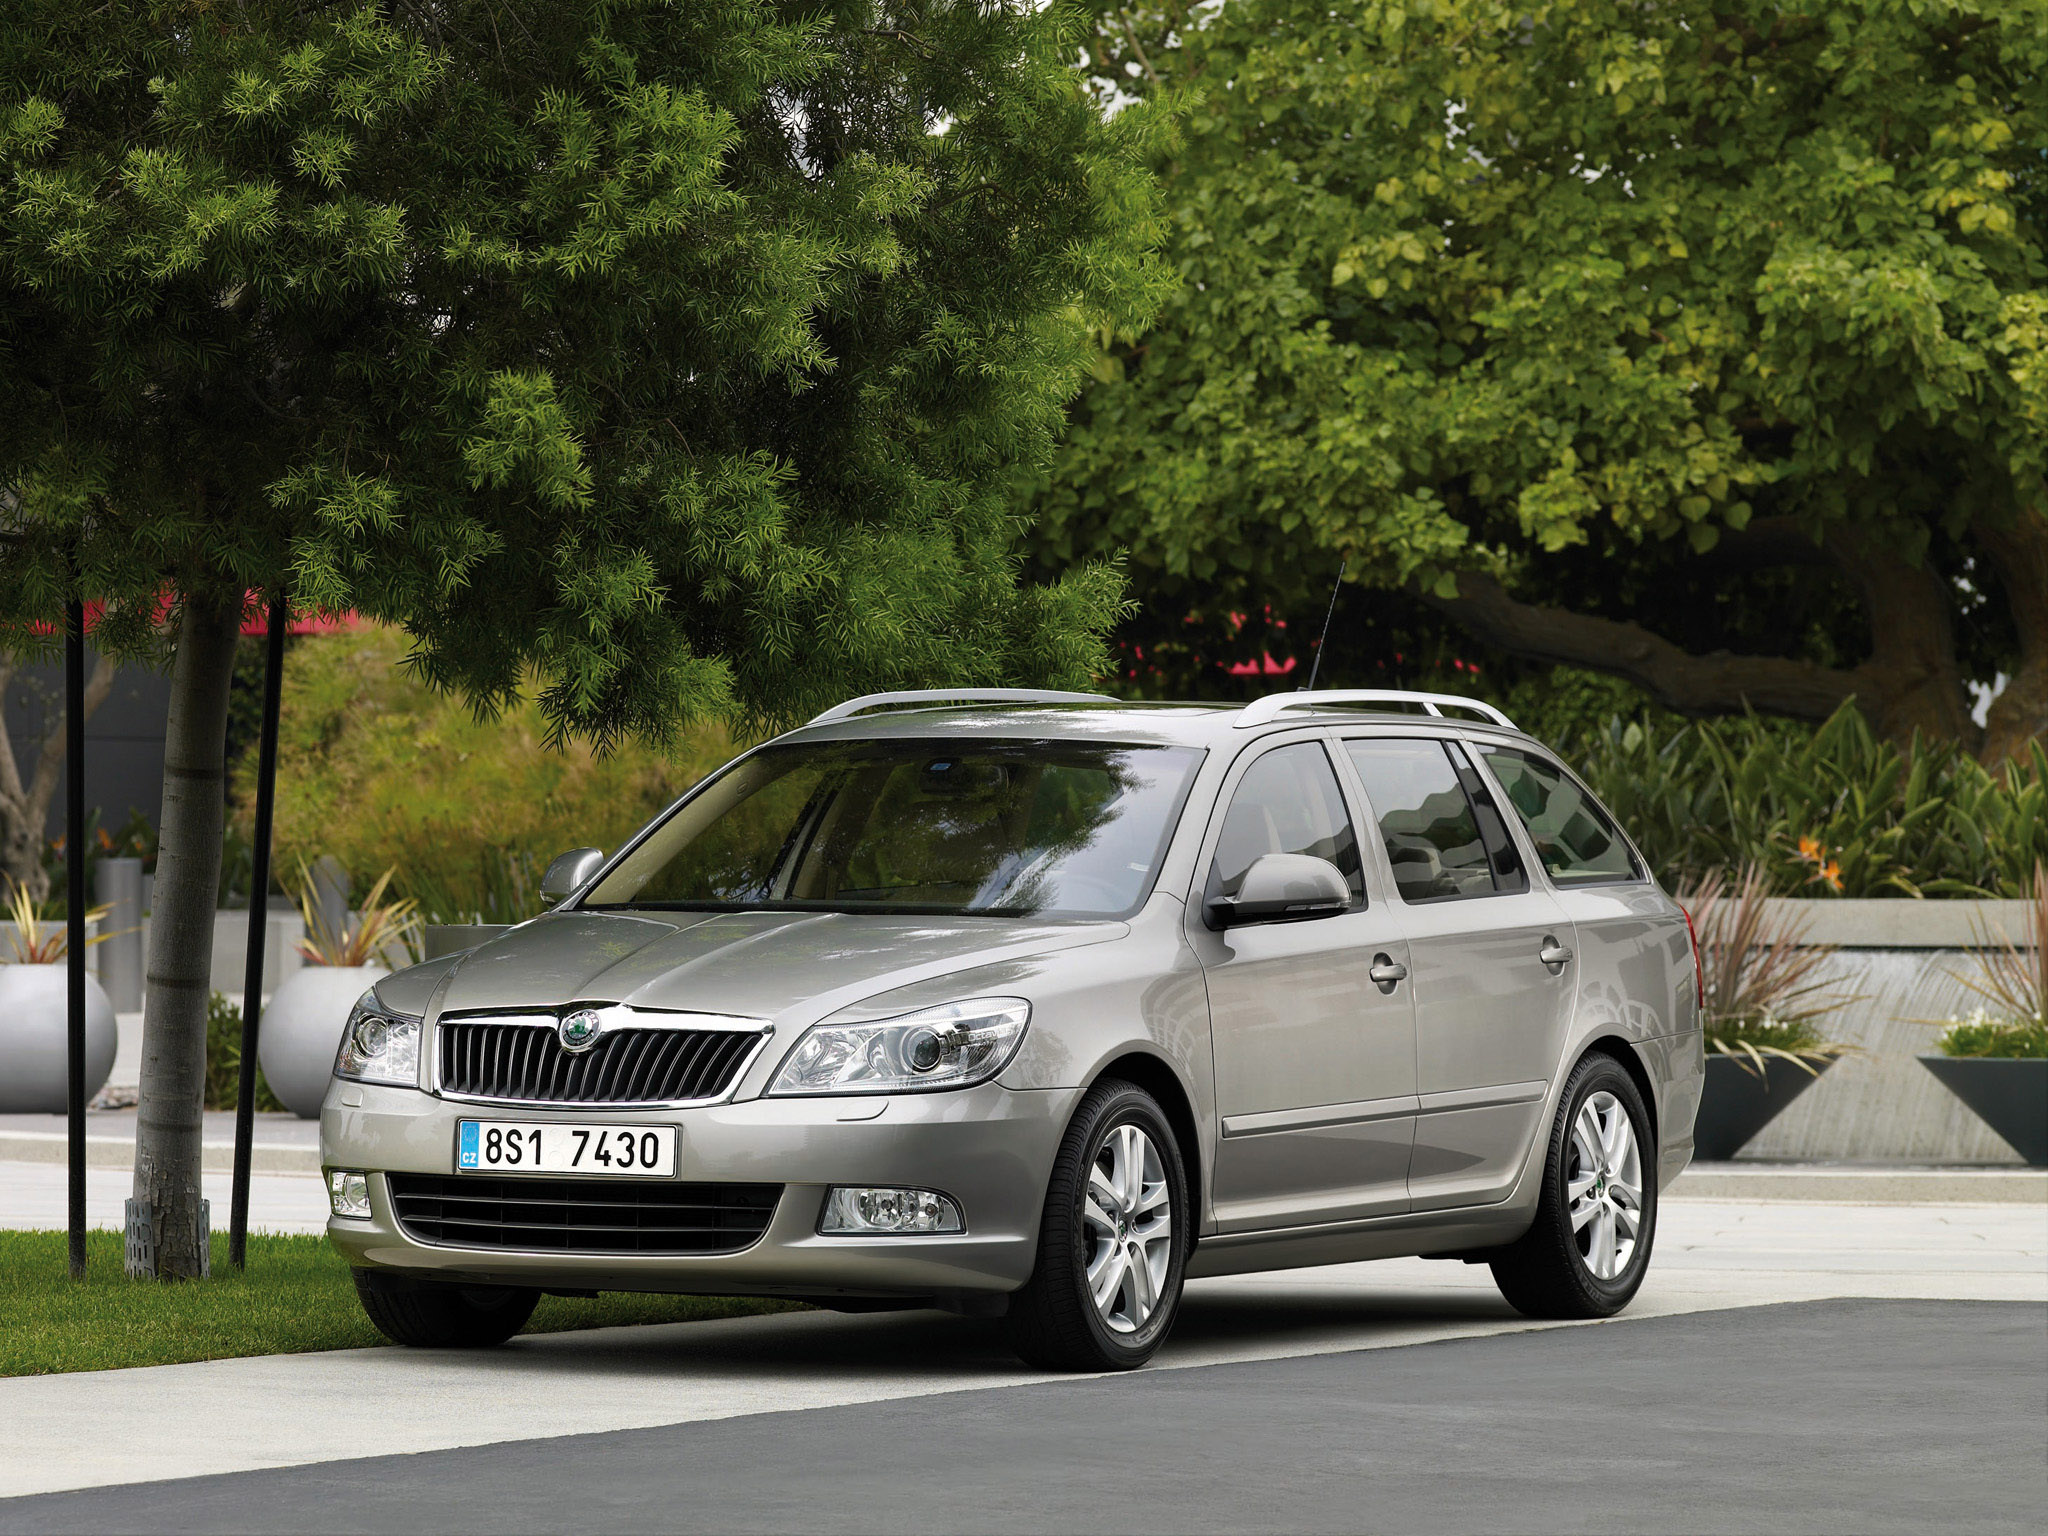 skoda octavia 2 combi essais fiabilit avis photos. Black Bedroom Furniture Sets. Home Design Ideas